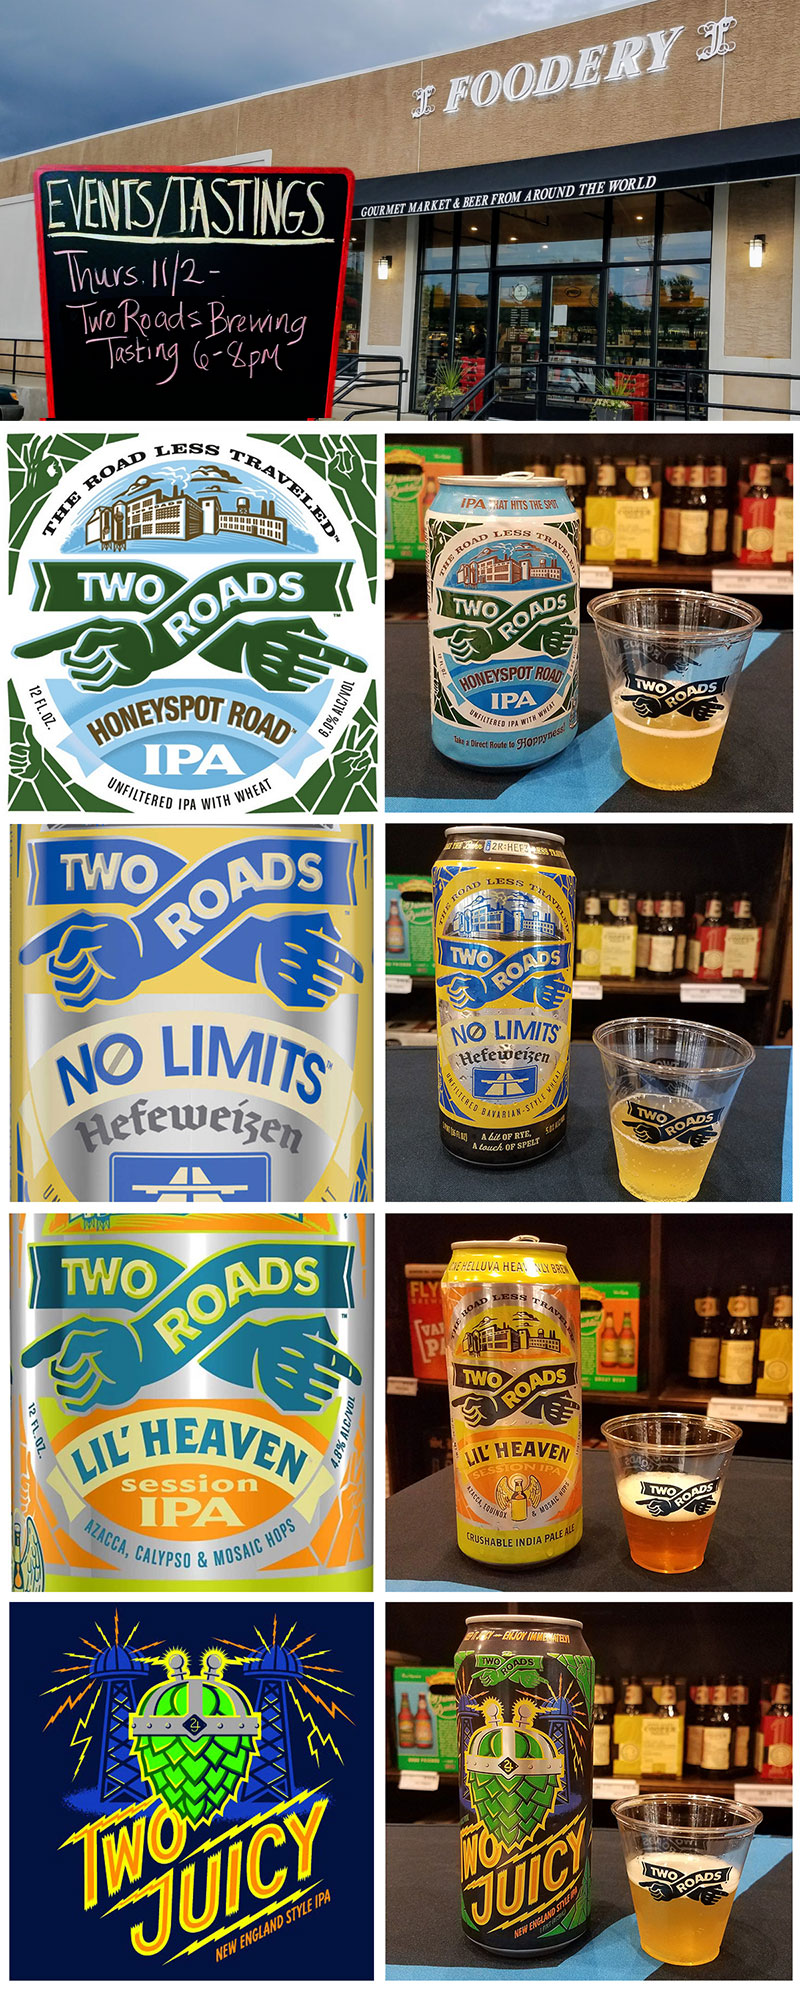 Four craft beer reviews in one, as we taste Two Roads Brewing Company beers at The Foodery in Phoenixville, PA. Covering Two Roads Honeyspot Road, No Limits, Lil' Heaven, & Two Juicy. Click through for the full review.